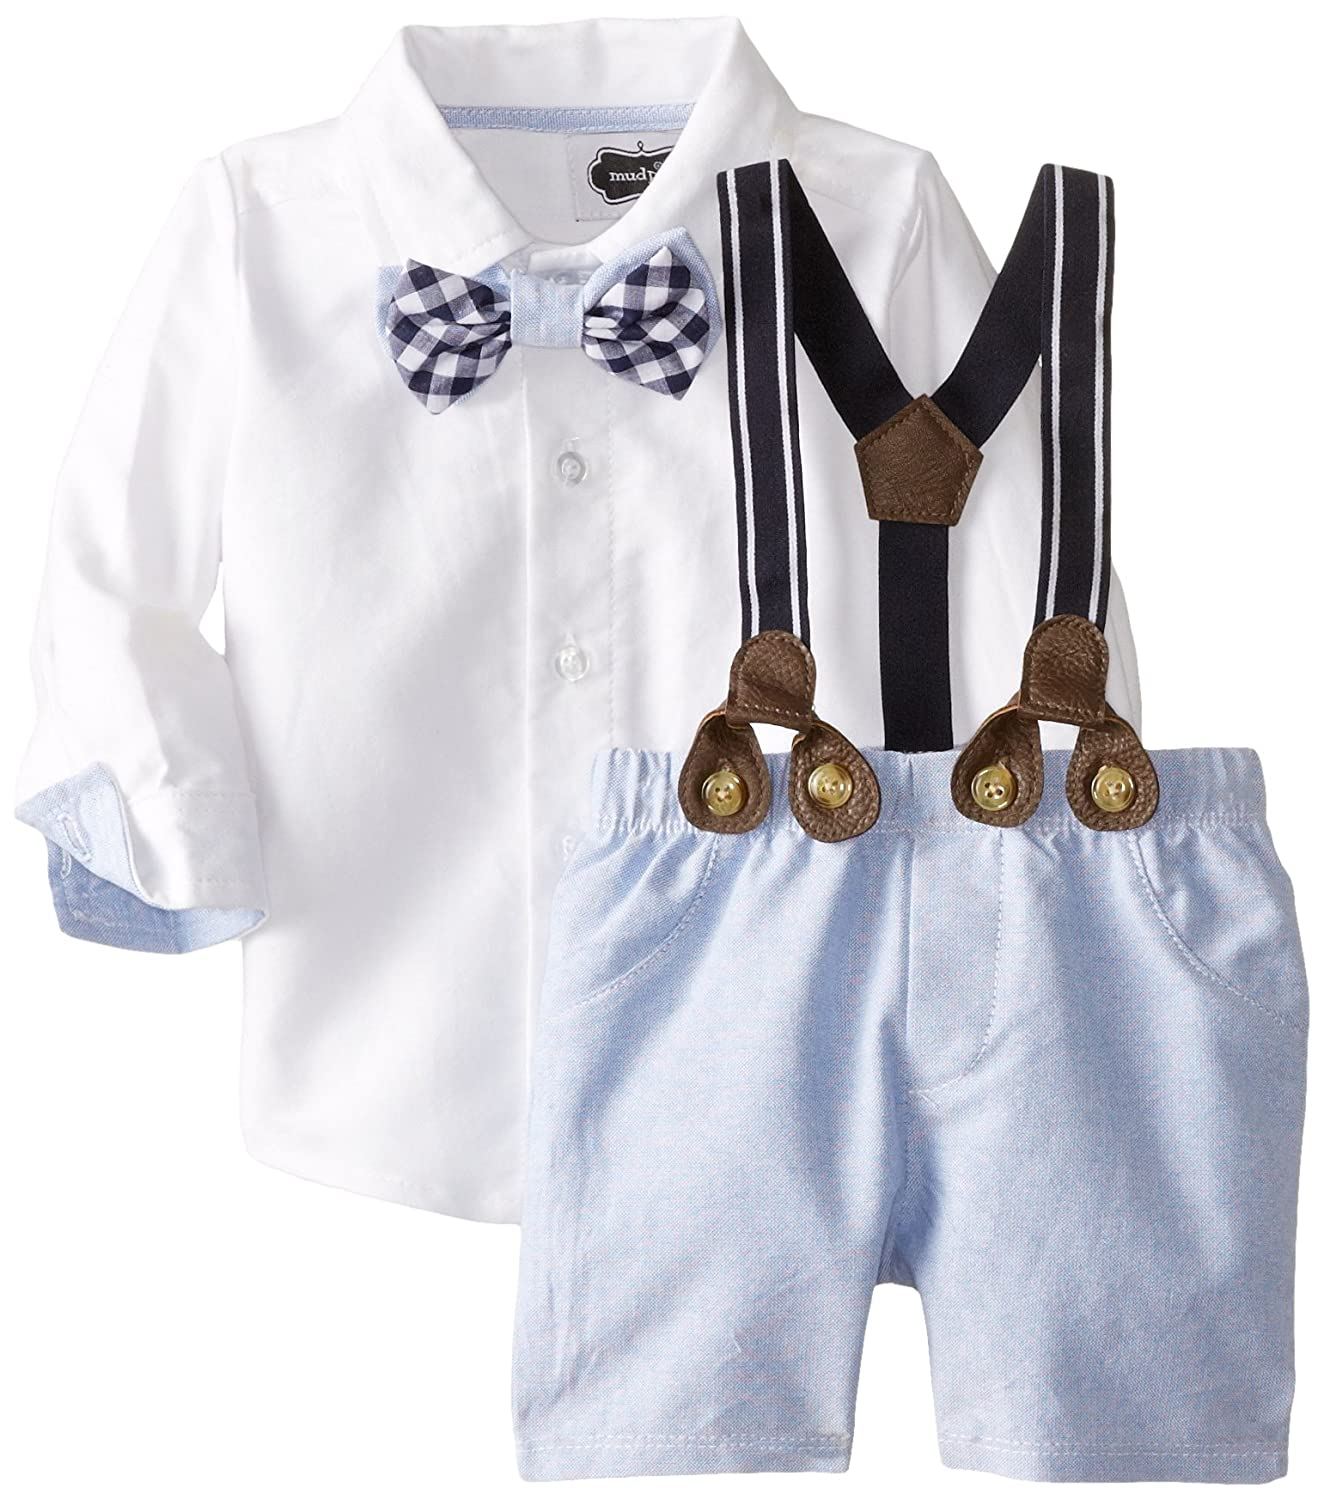 1930s Childrens Fashion: Girls, Boys, Toddler, Baby Costumes Mud Pie Baby Boys Suspender Short Set $45.99 AT vintagedancer.com